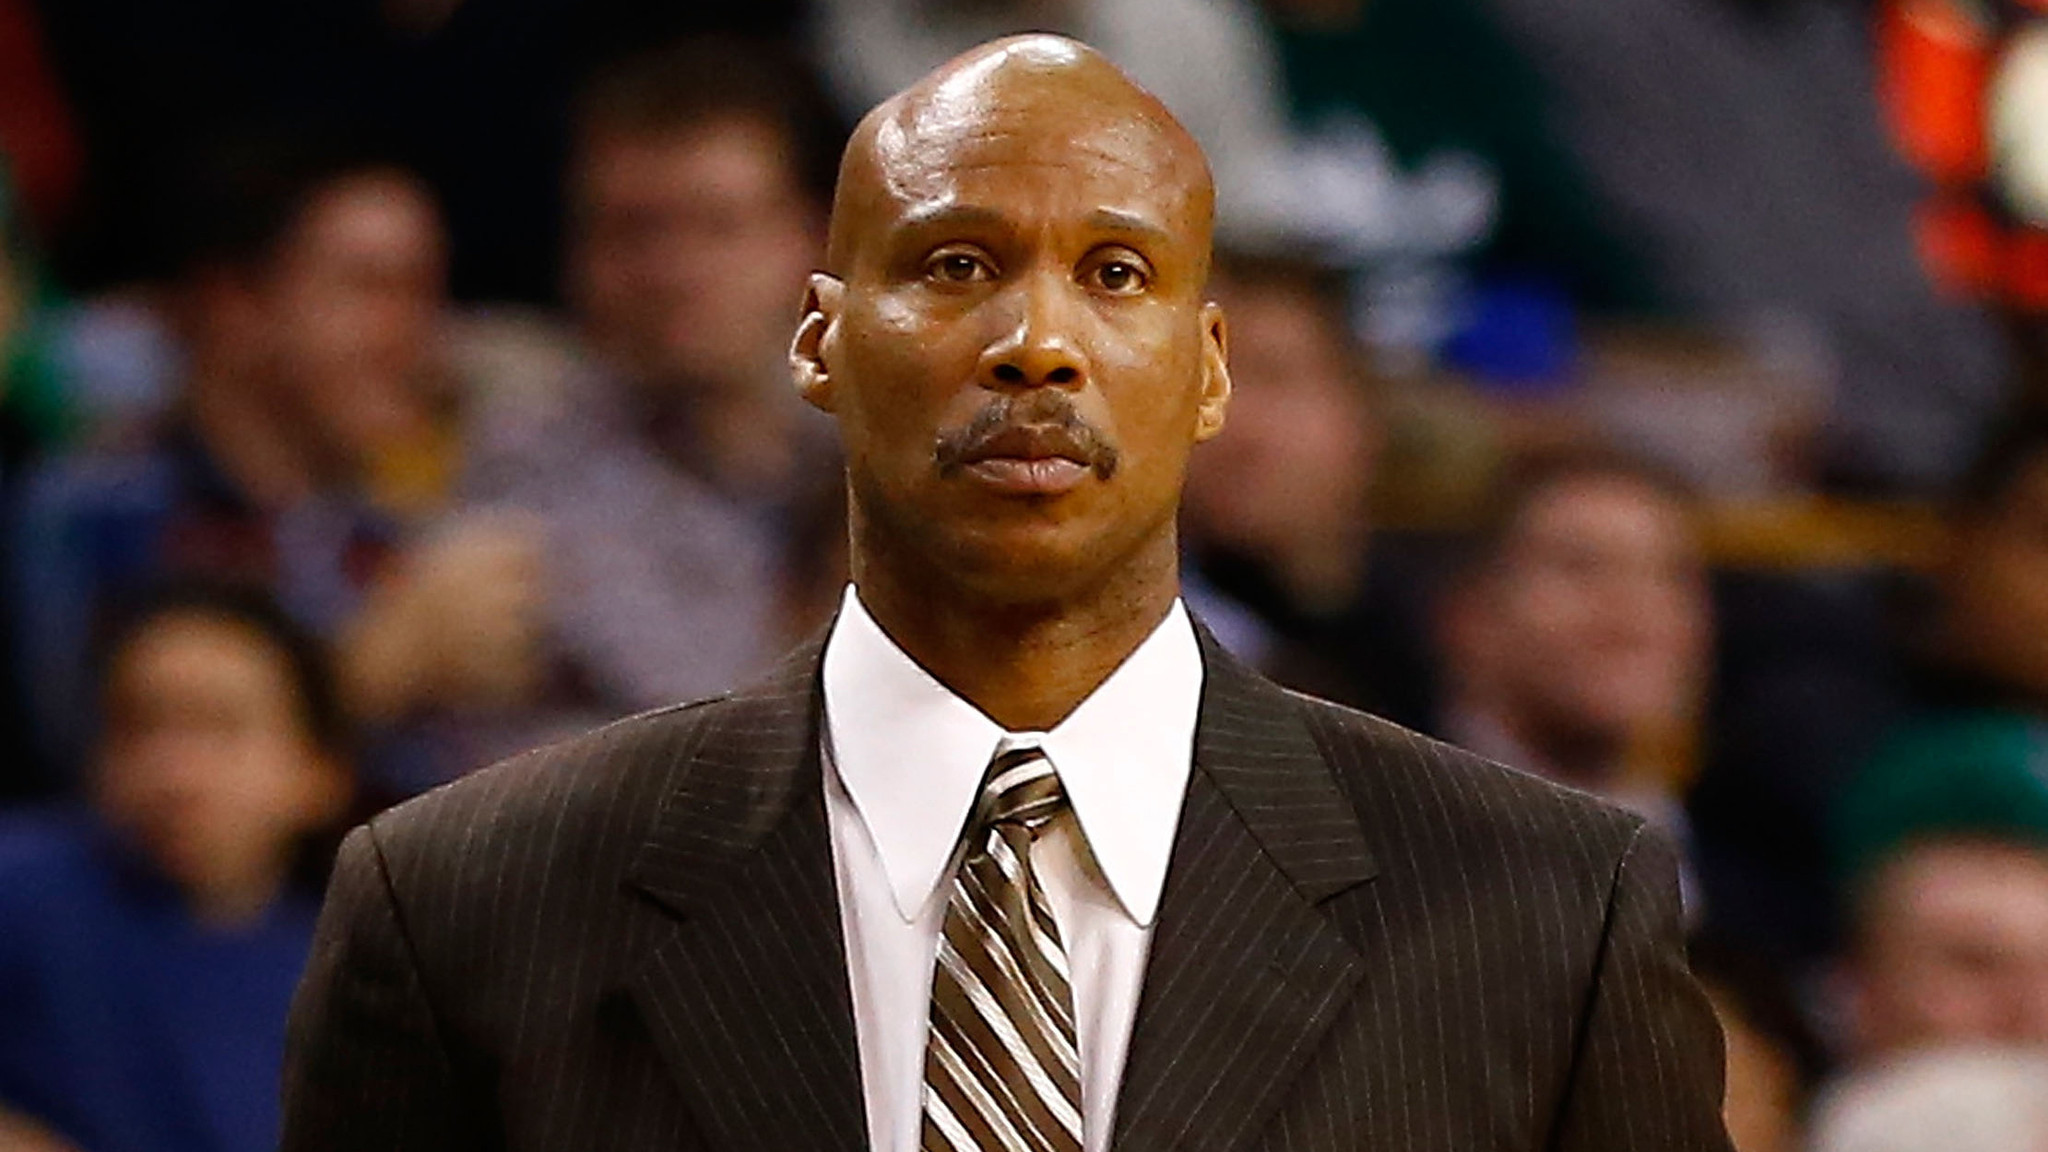 Byron Scott always saw something special in Kobe Bryant